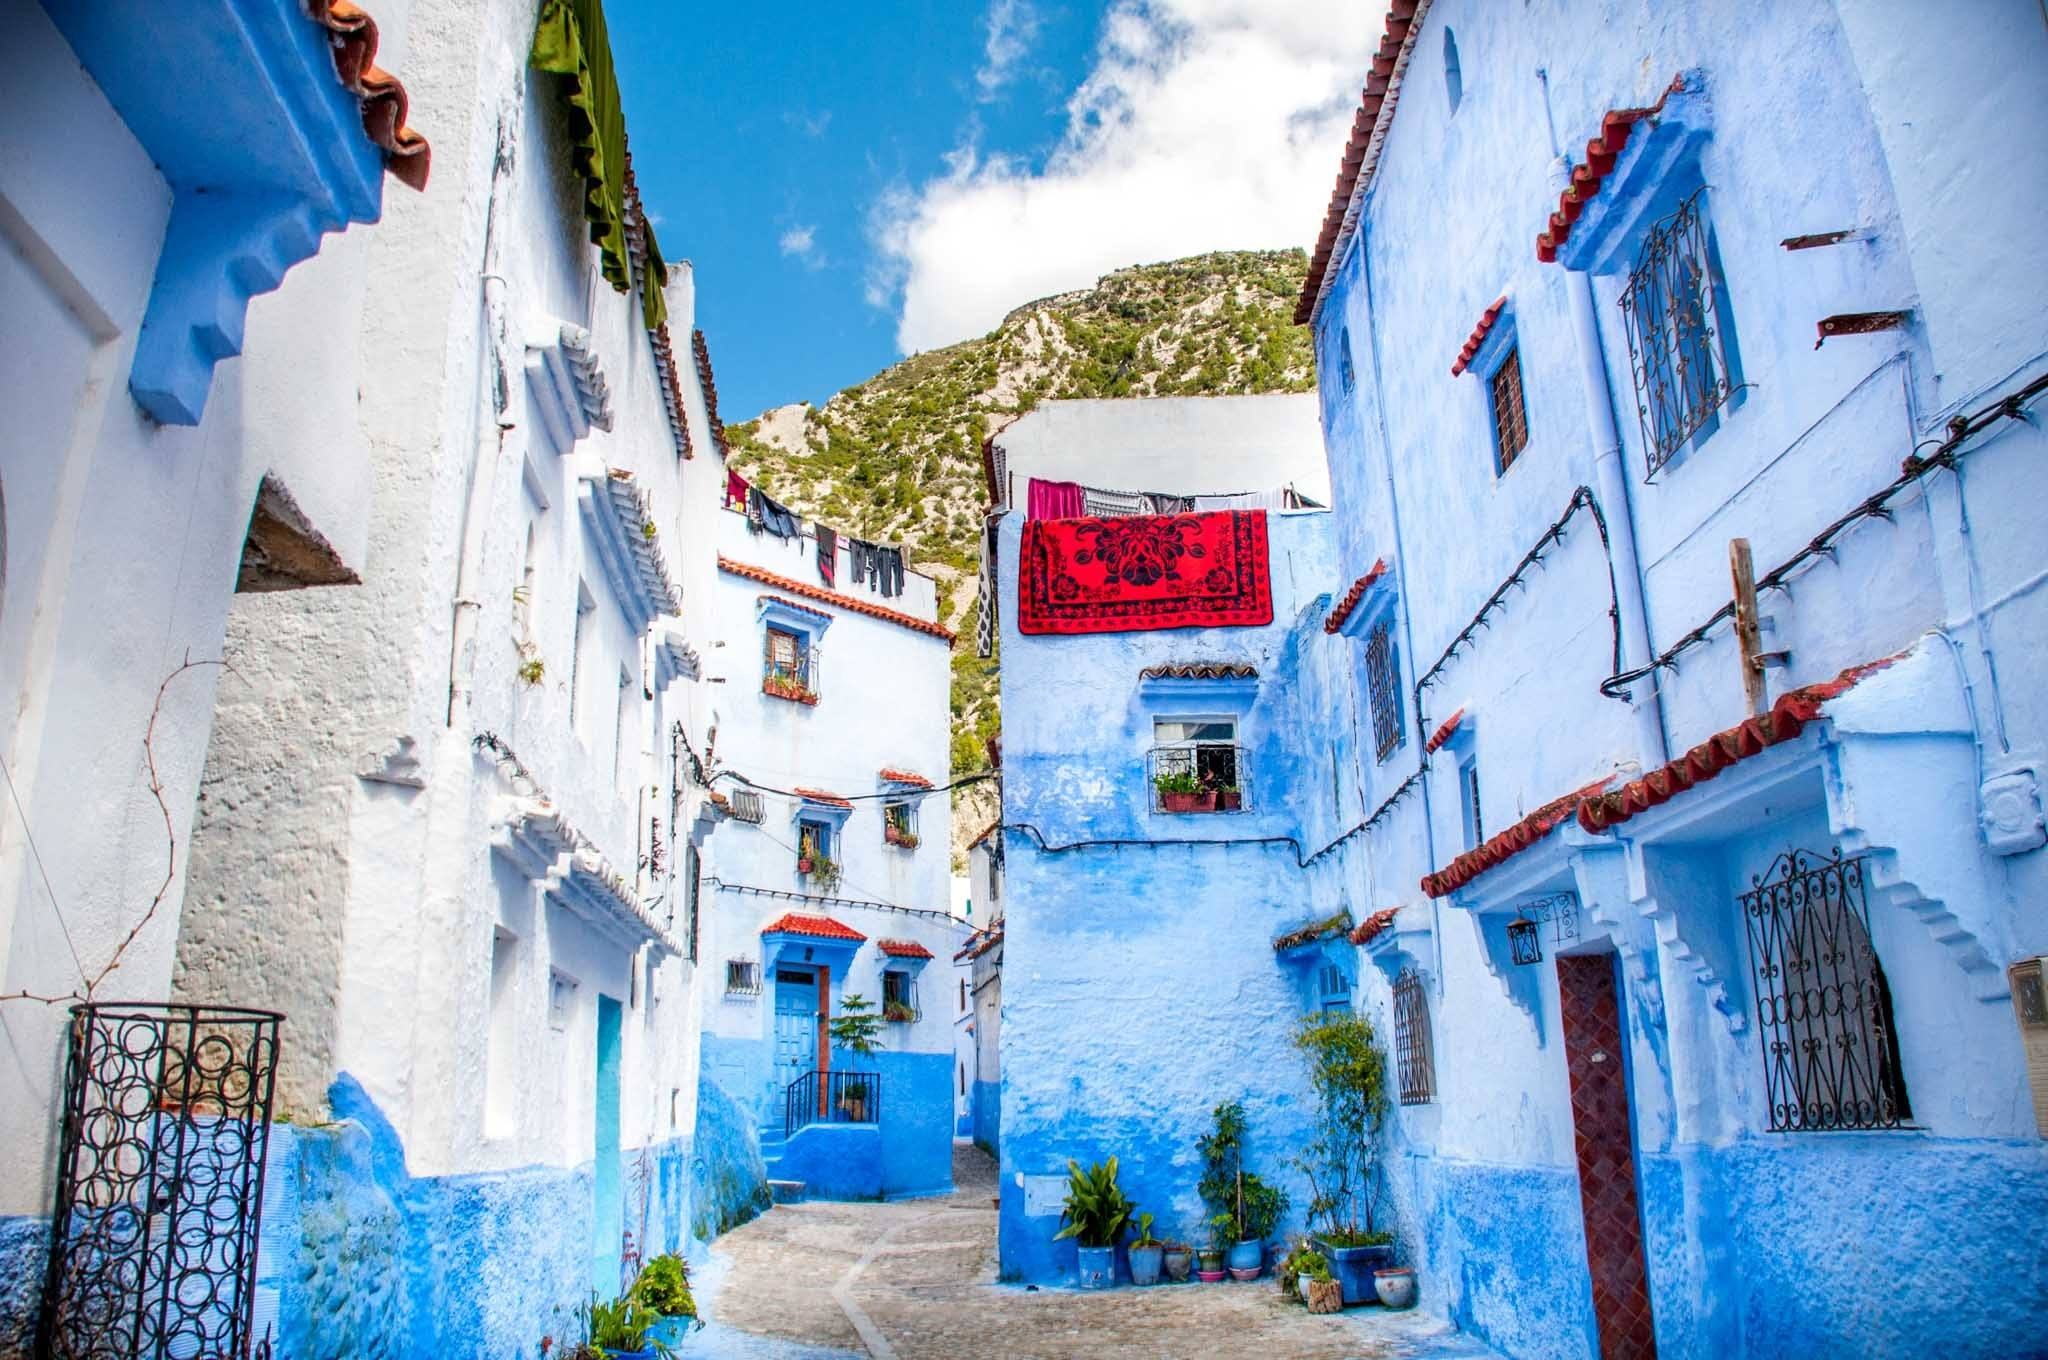 Blue and white street in Morocco